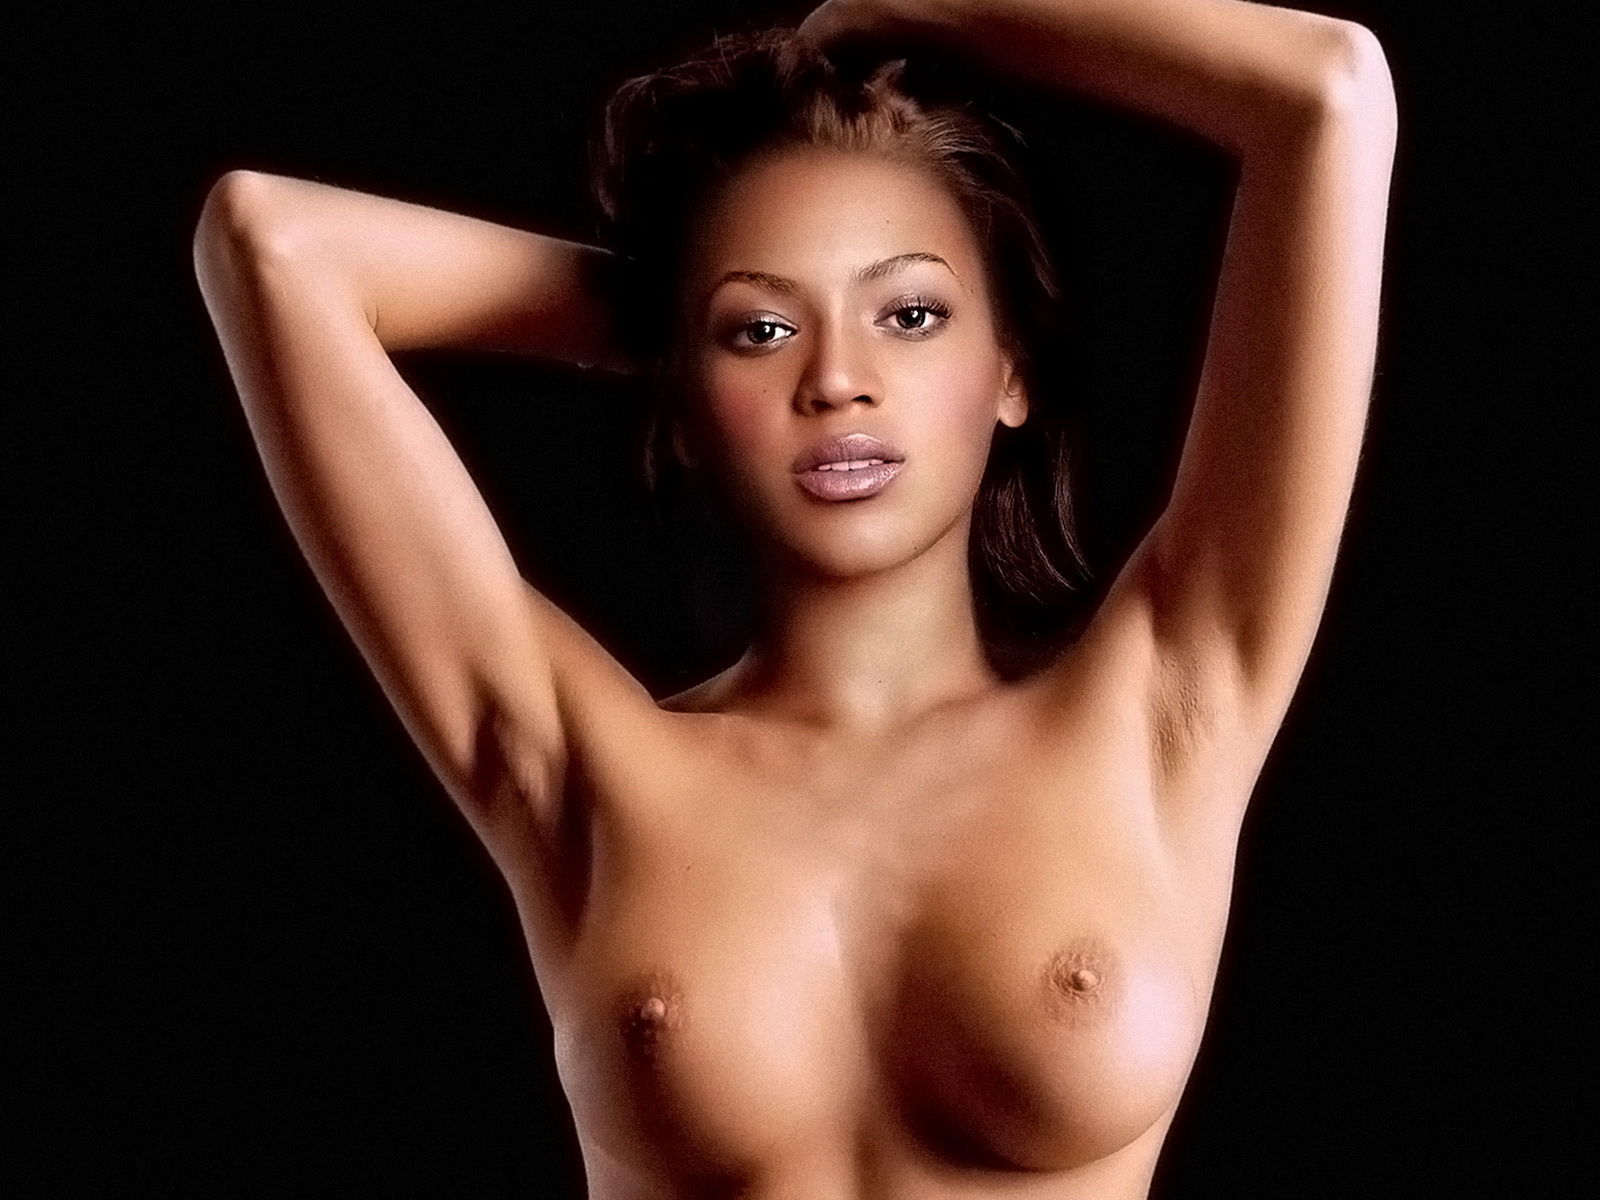 http://1.bp.blogspot.com/-tJ1MgoAbMlM/TwMAawb1NpI/AAAAAAAADWk/L04-PUMP3KY/s1600/Beyonce_Knowles_full_frontal_naked_show_big_boobs_and_beauty_pussy.jpg